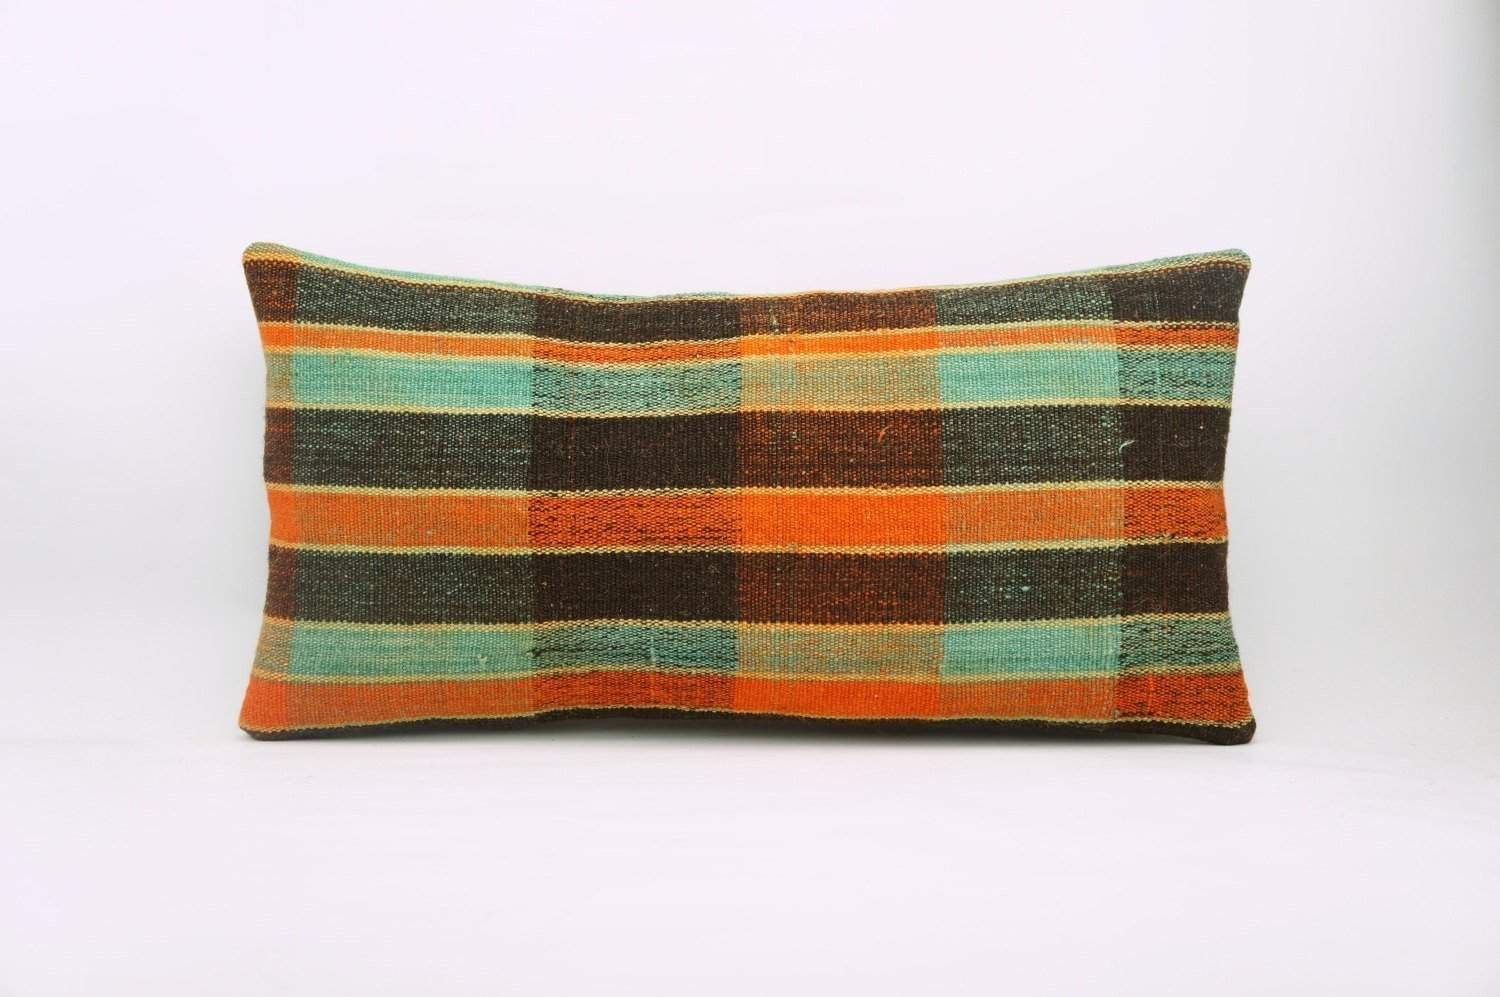 12x24 Vintage Hand Woven Kilim Pillow Lumbar Bohemian pillow case, Modern home decor  orange green brown  striped 976